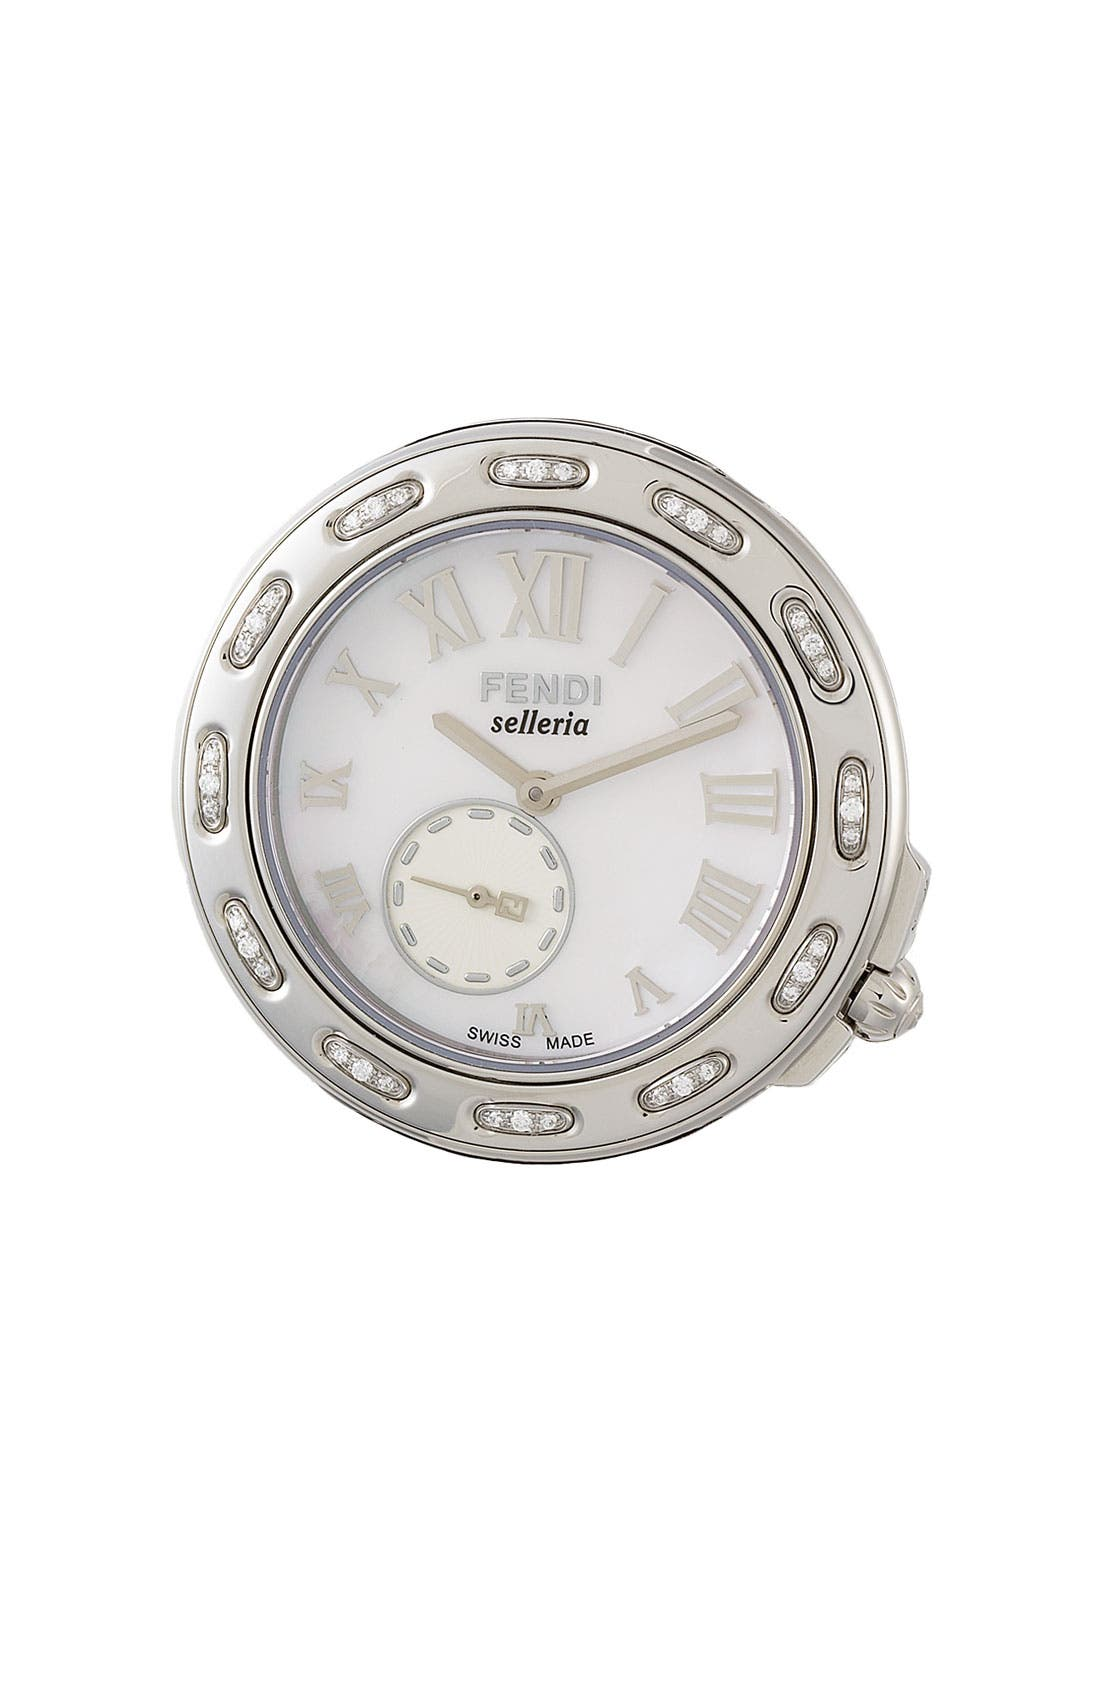 Alternate Image 1 Selected - Fendi 'Selleria' Diamond Watch Case